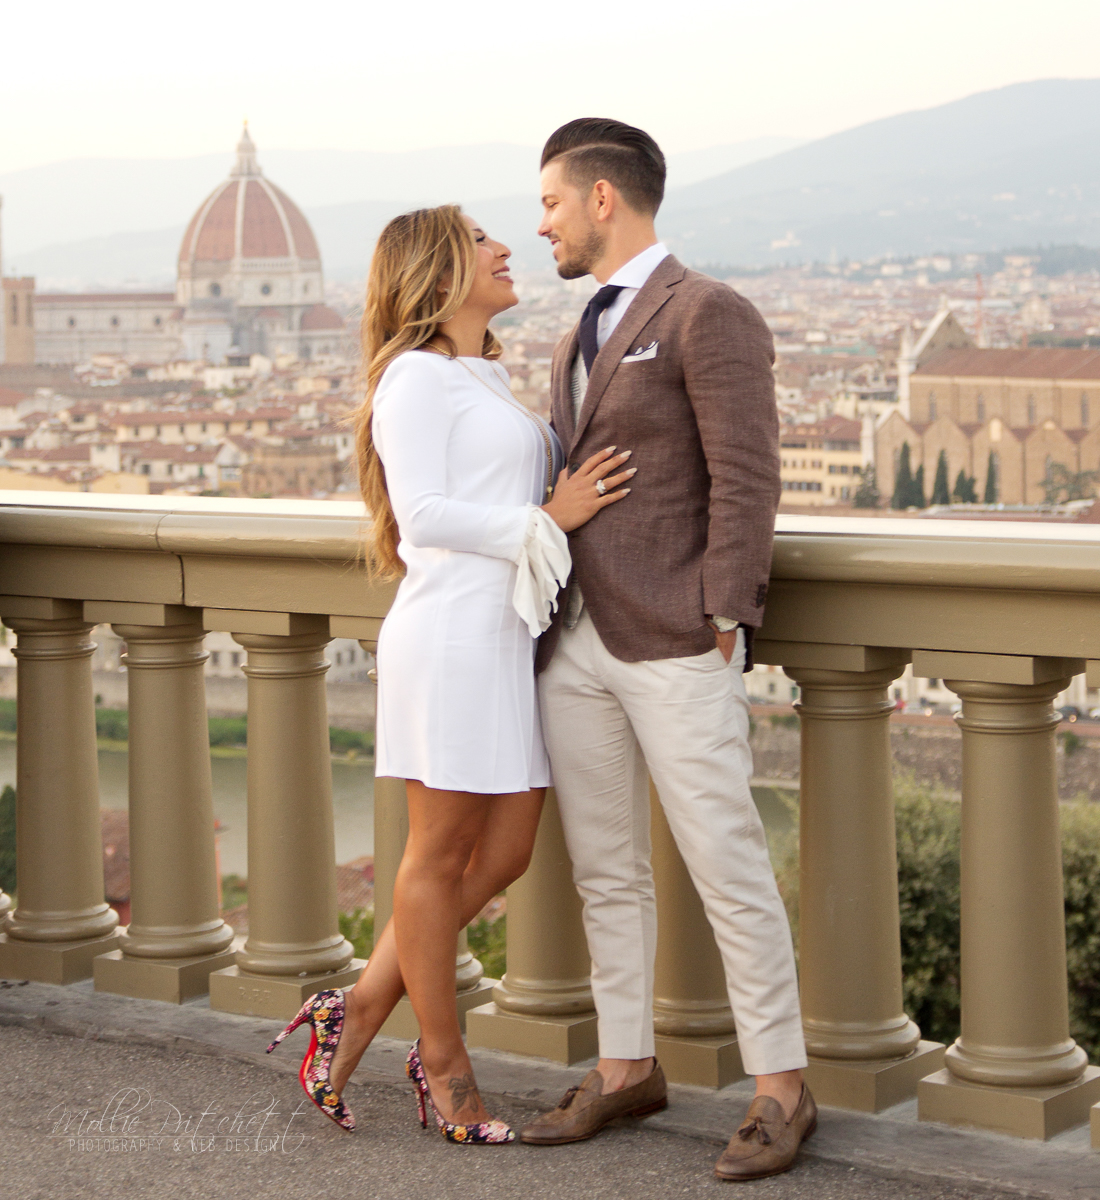 Luxury Wedding Anniversary Photography in Florence, Italy